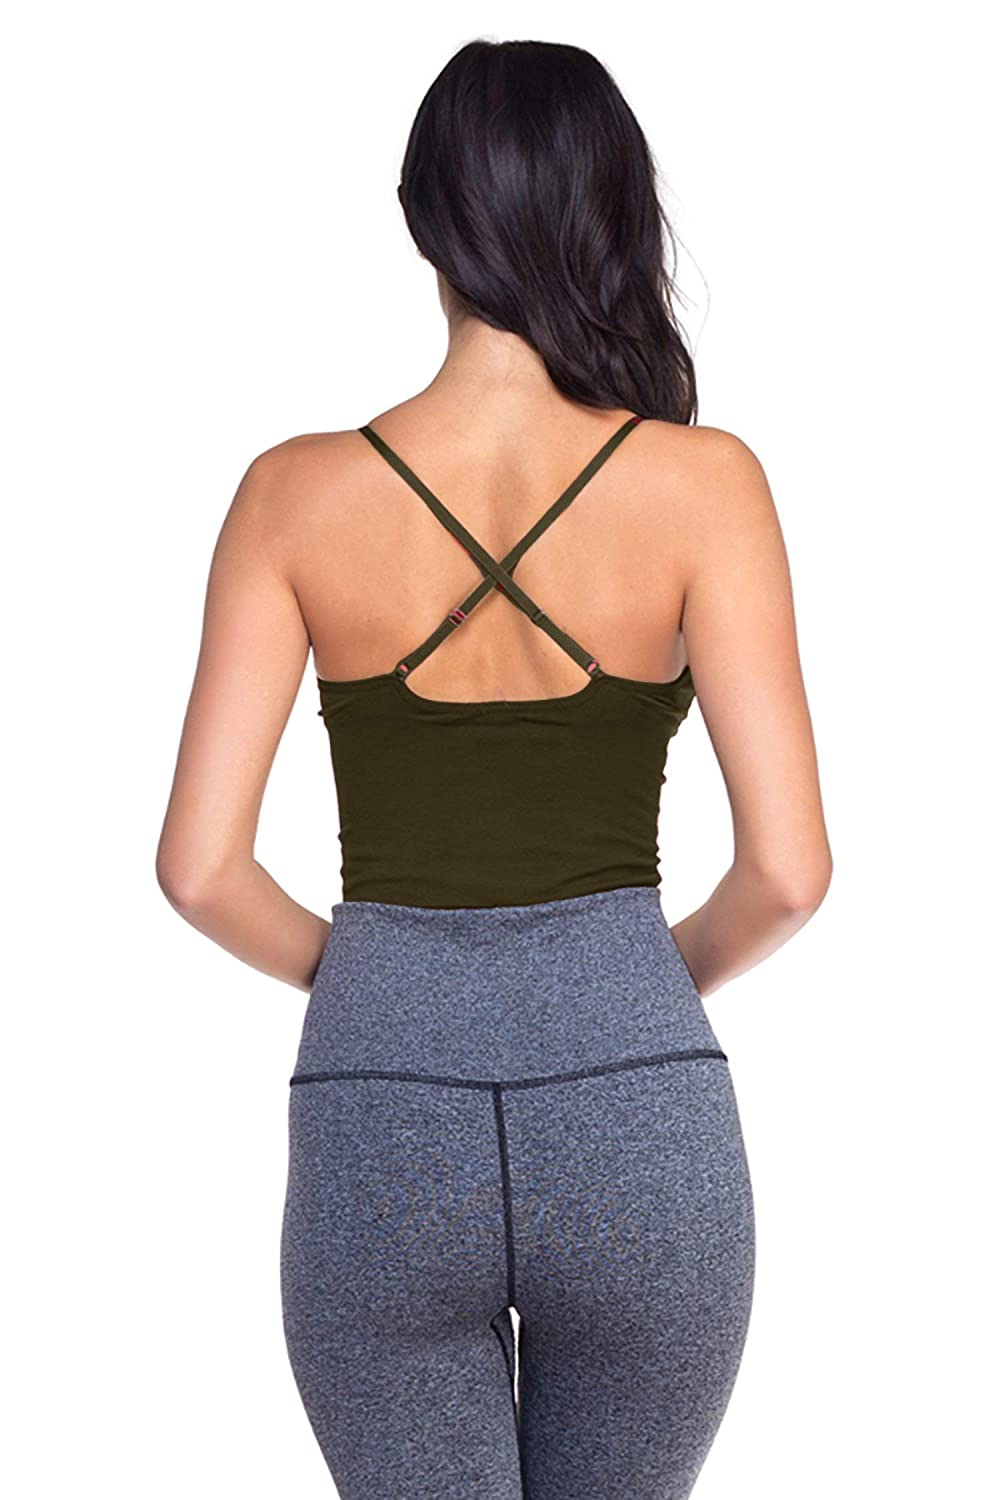 Yoga Athletic Workout Sports Bra TOP LEGGING TL Womens Active Seamless Crop Cami Bras